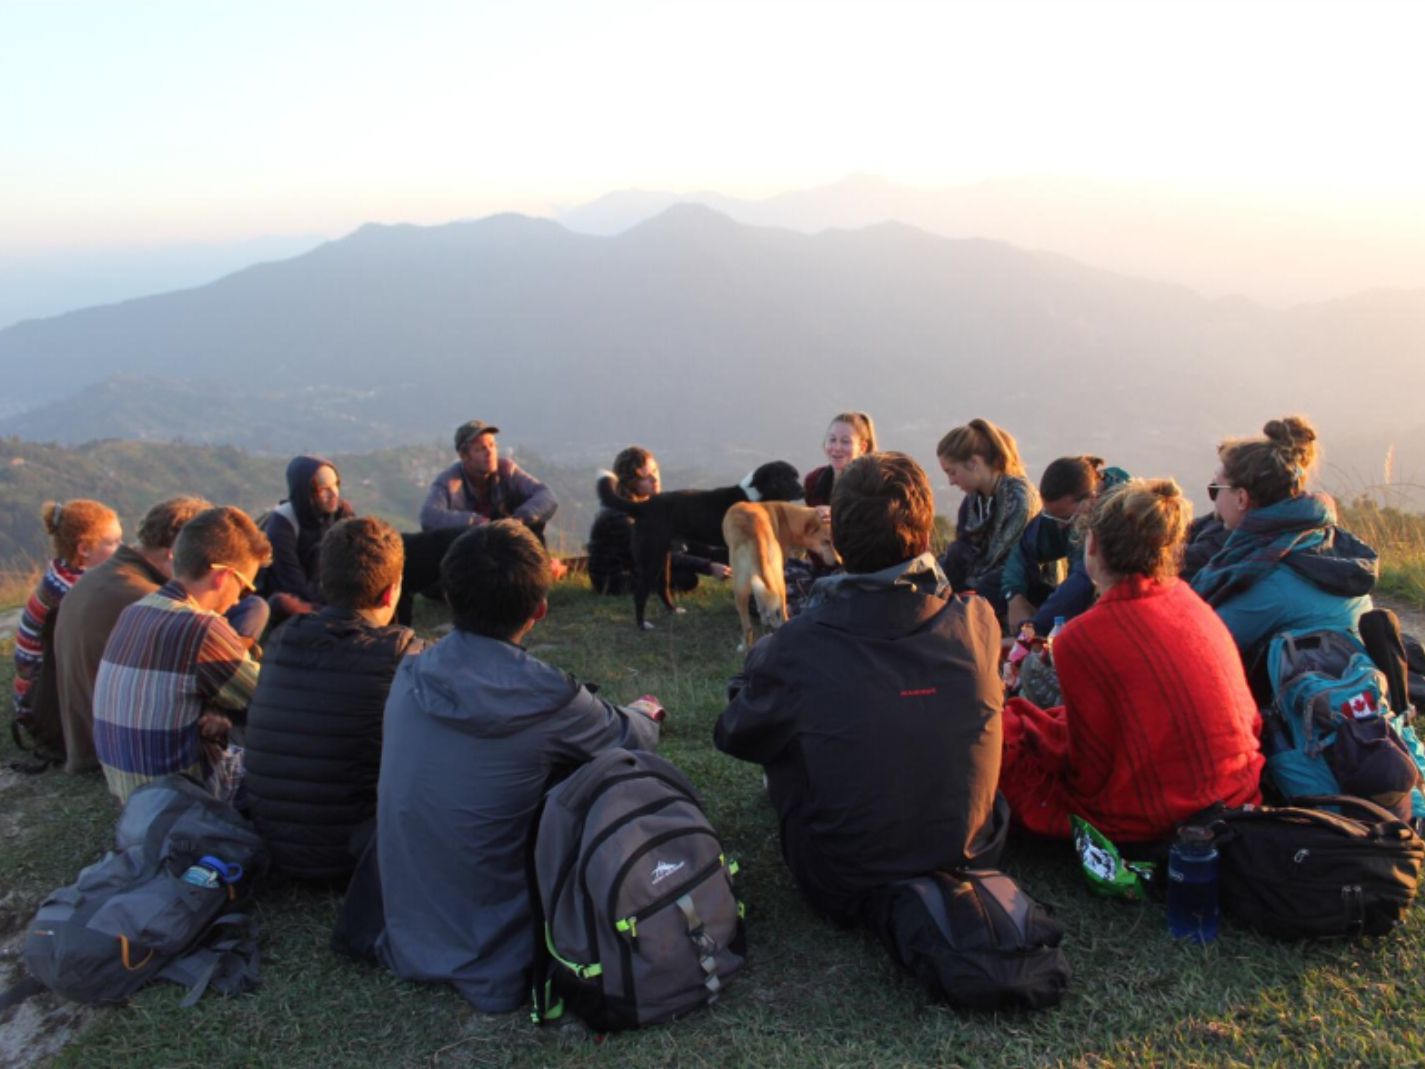 Gap Year Program - Youth International Gap Semesters in Asia and South America  5